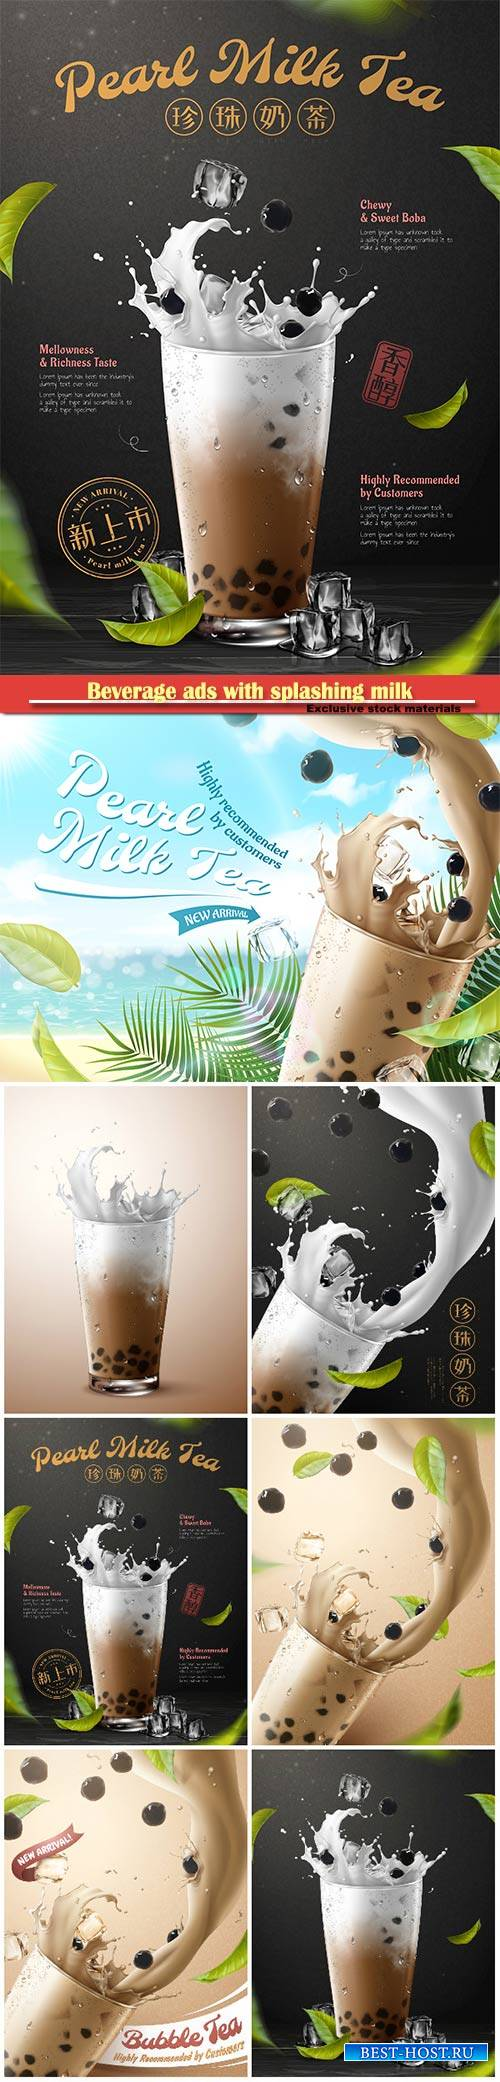 Beverage ads with splashing milk and pearl in 3d vector illustration